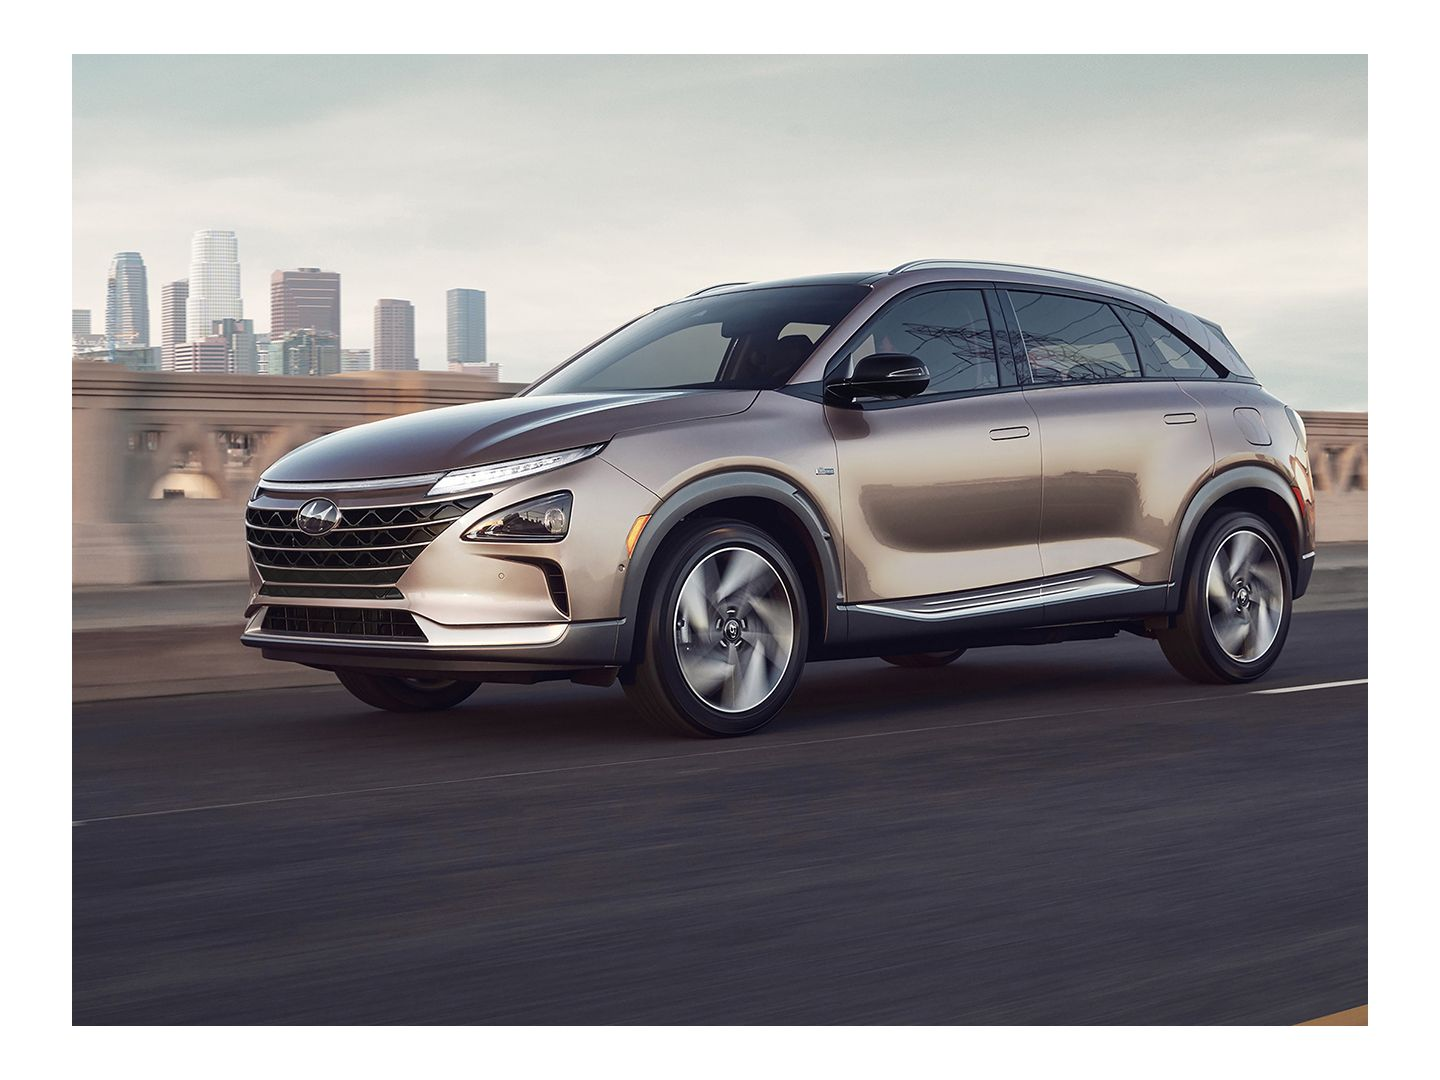 2020 Nexo Fuel Cell